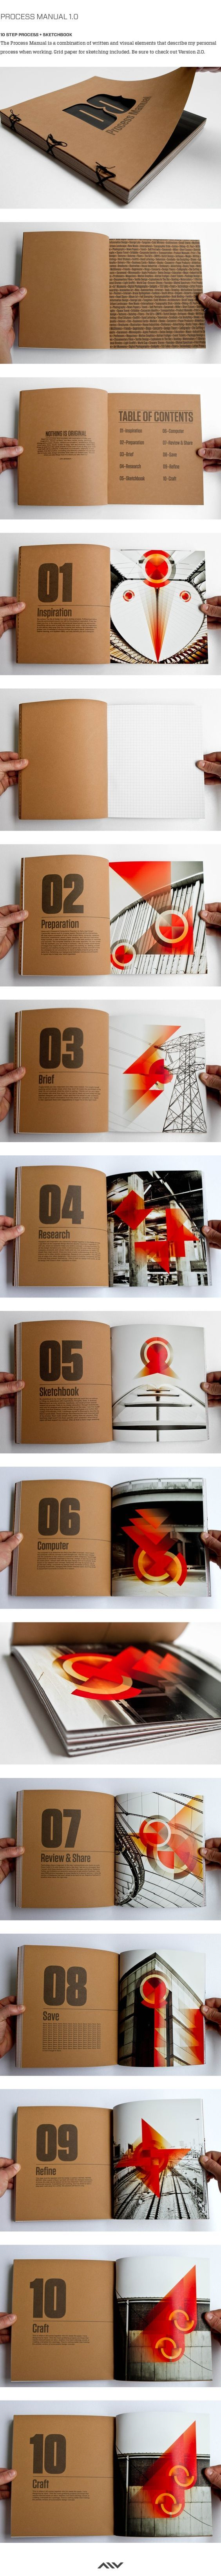 Great idea for printed graphic design portfolio. The color pops on the recycled cardstock. The table of contents is genius because it guides the reader through your work.: